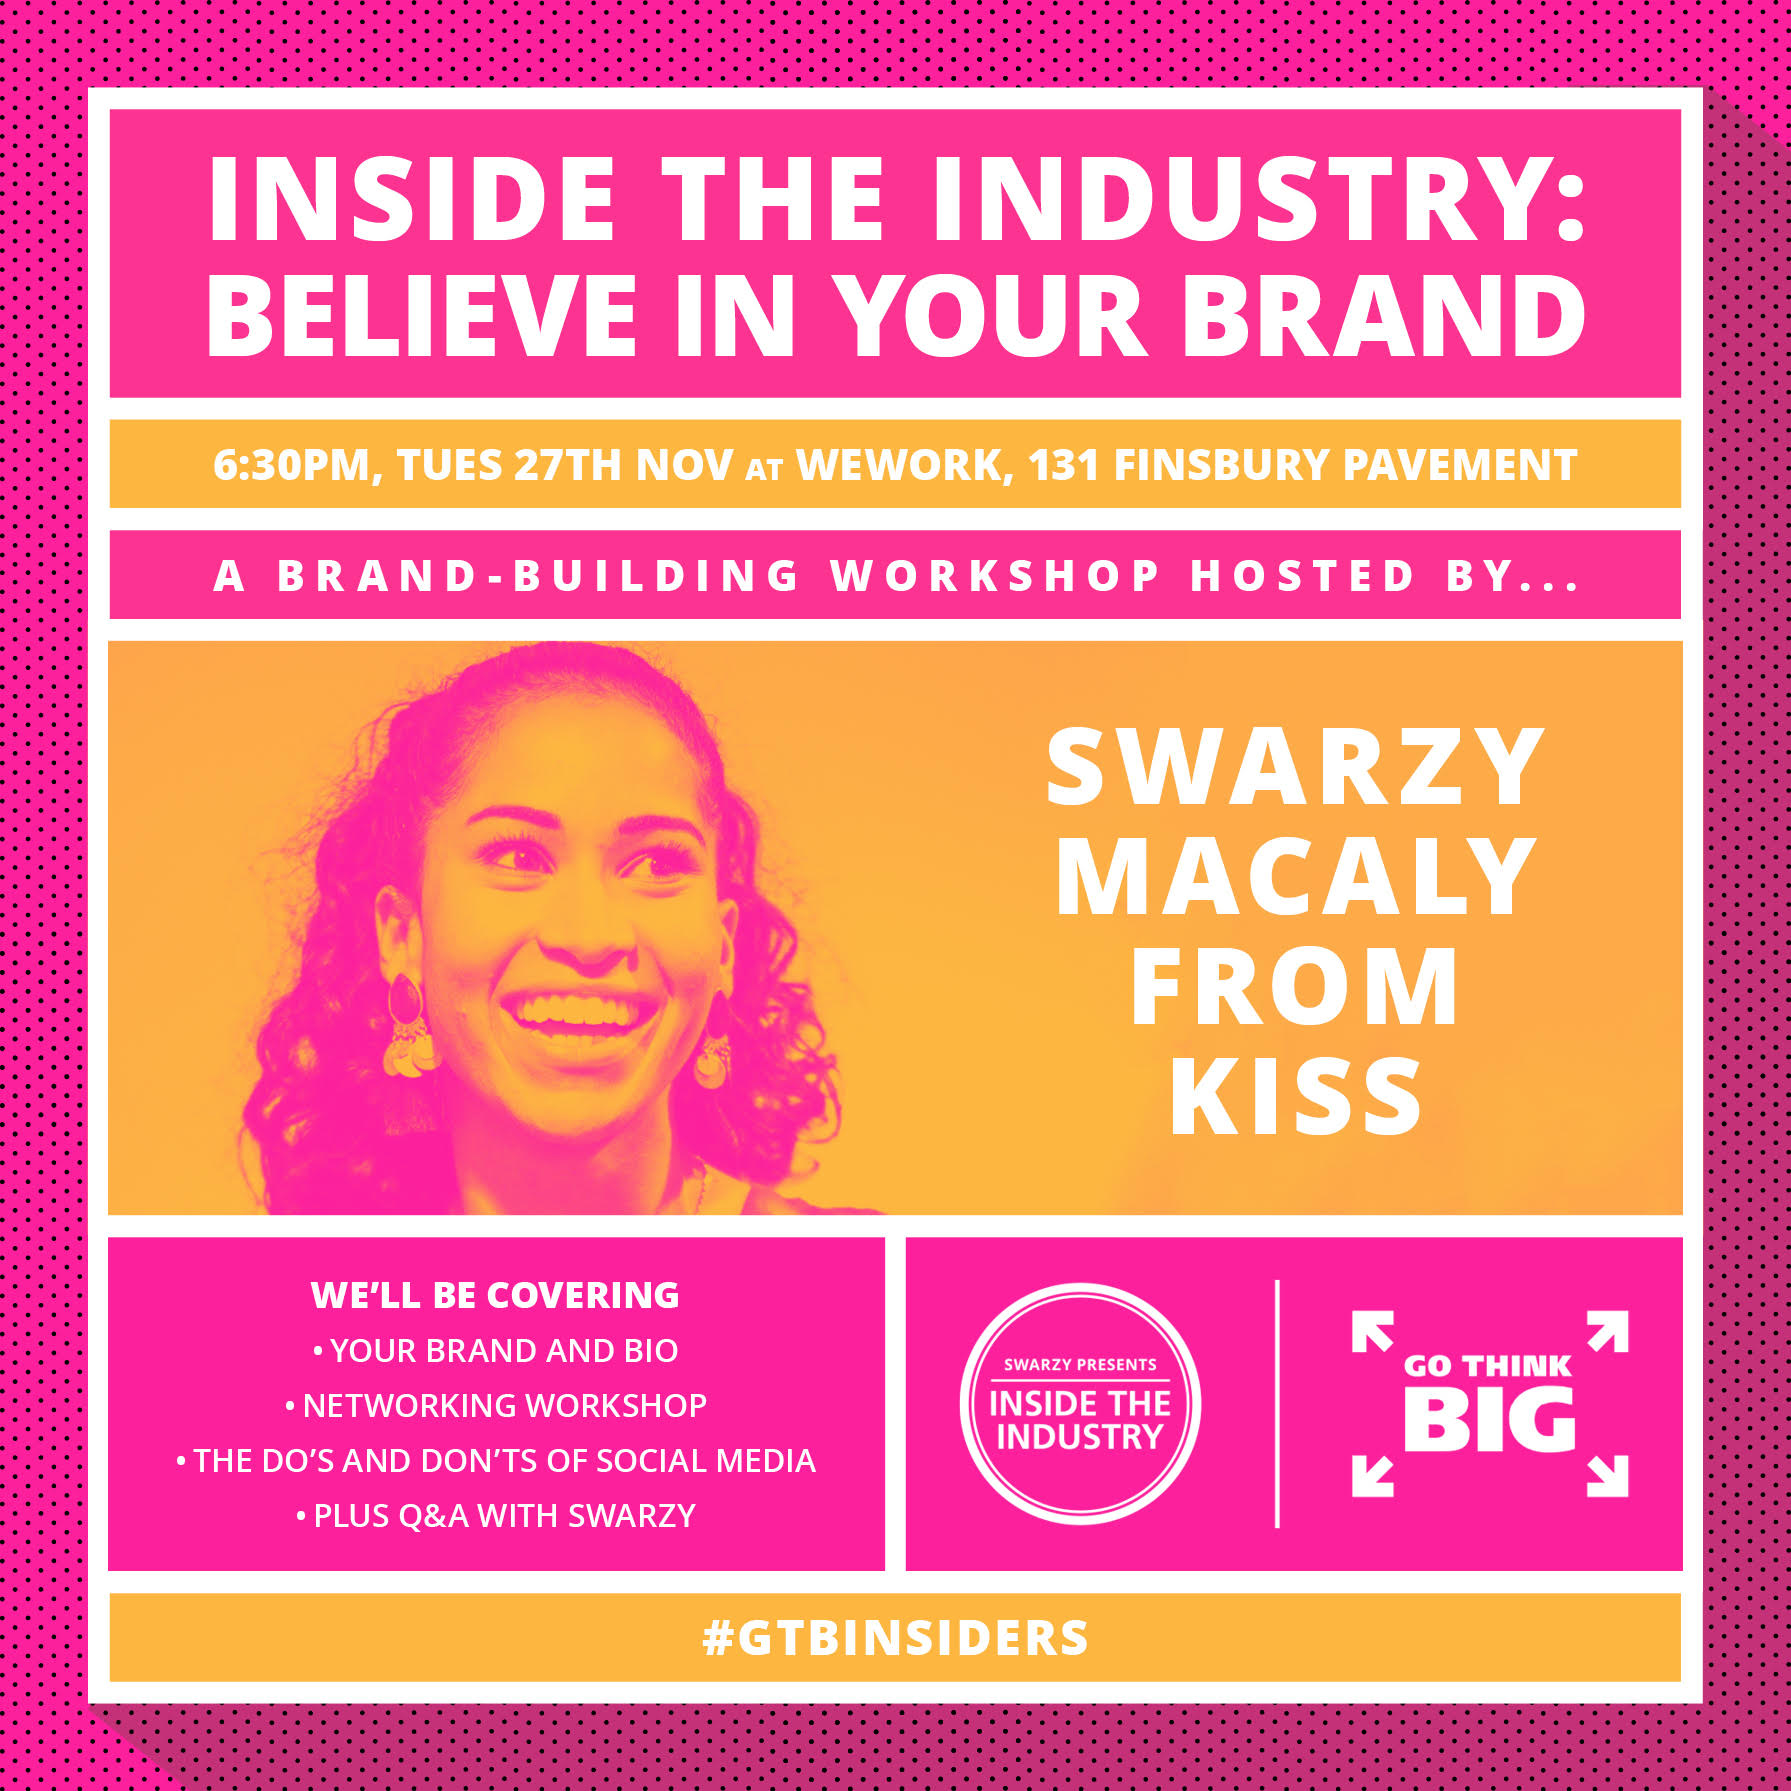 BELIEVE IN YOUR BRAND - a night featuring games and workshops on branding, networking, and social media. -